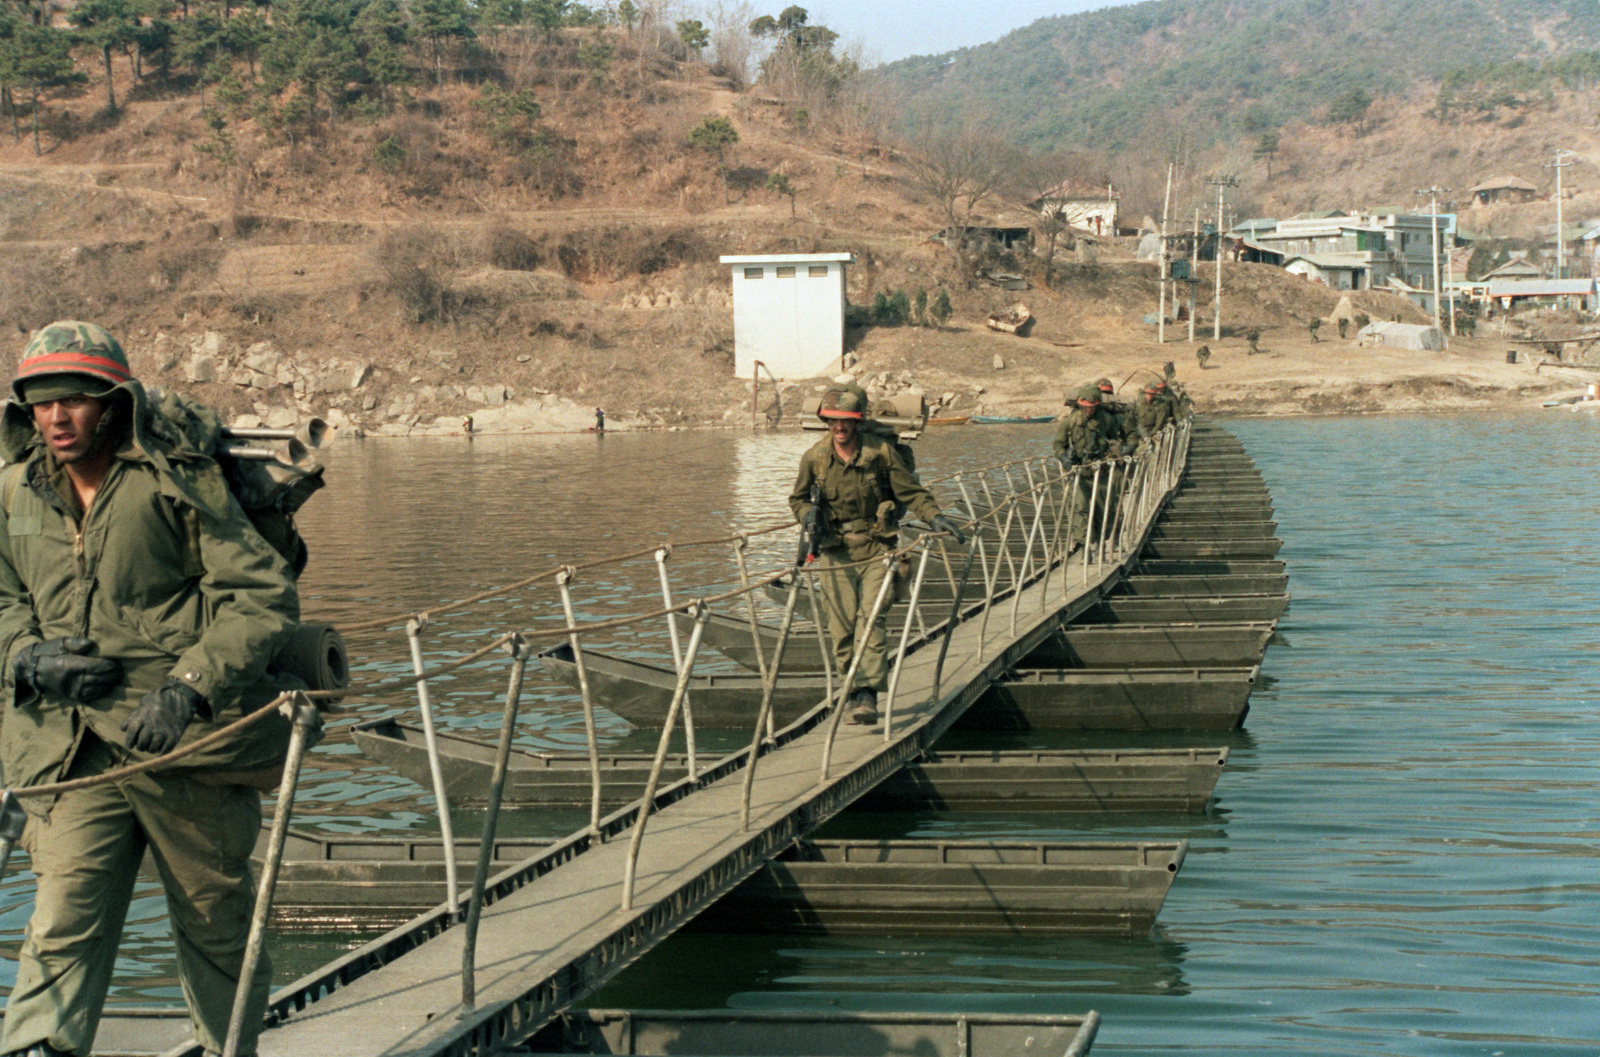 Members Of The 1ST Battalion 27th Infantry 25th Division Cross Nam Han River On An Aluminum Foot Bridge Built By 65th Engineer